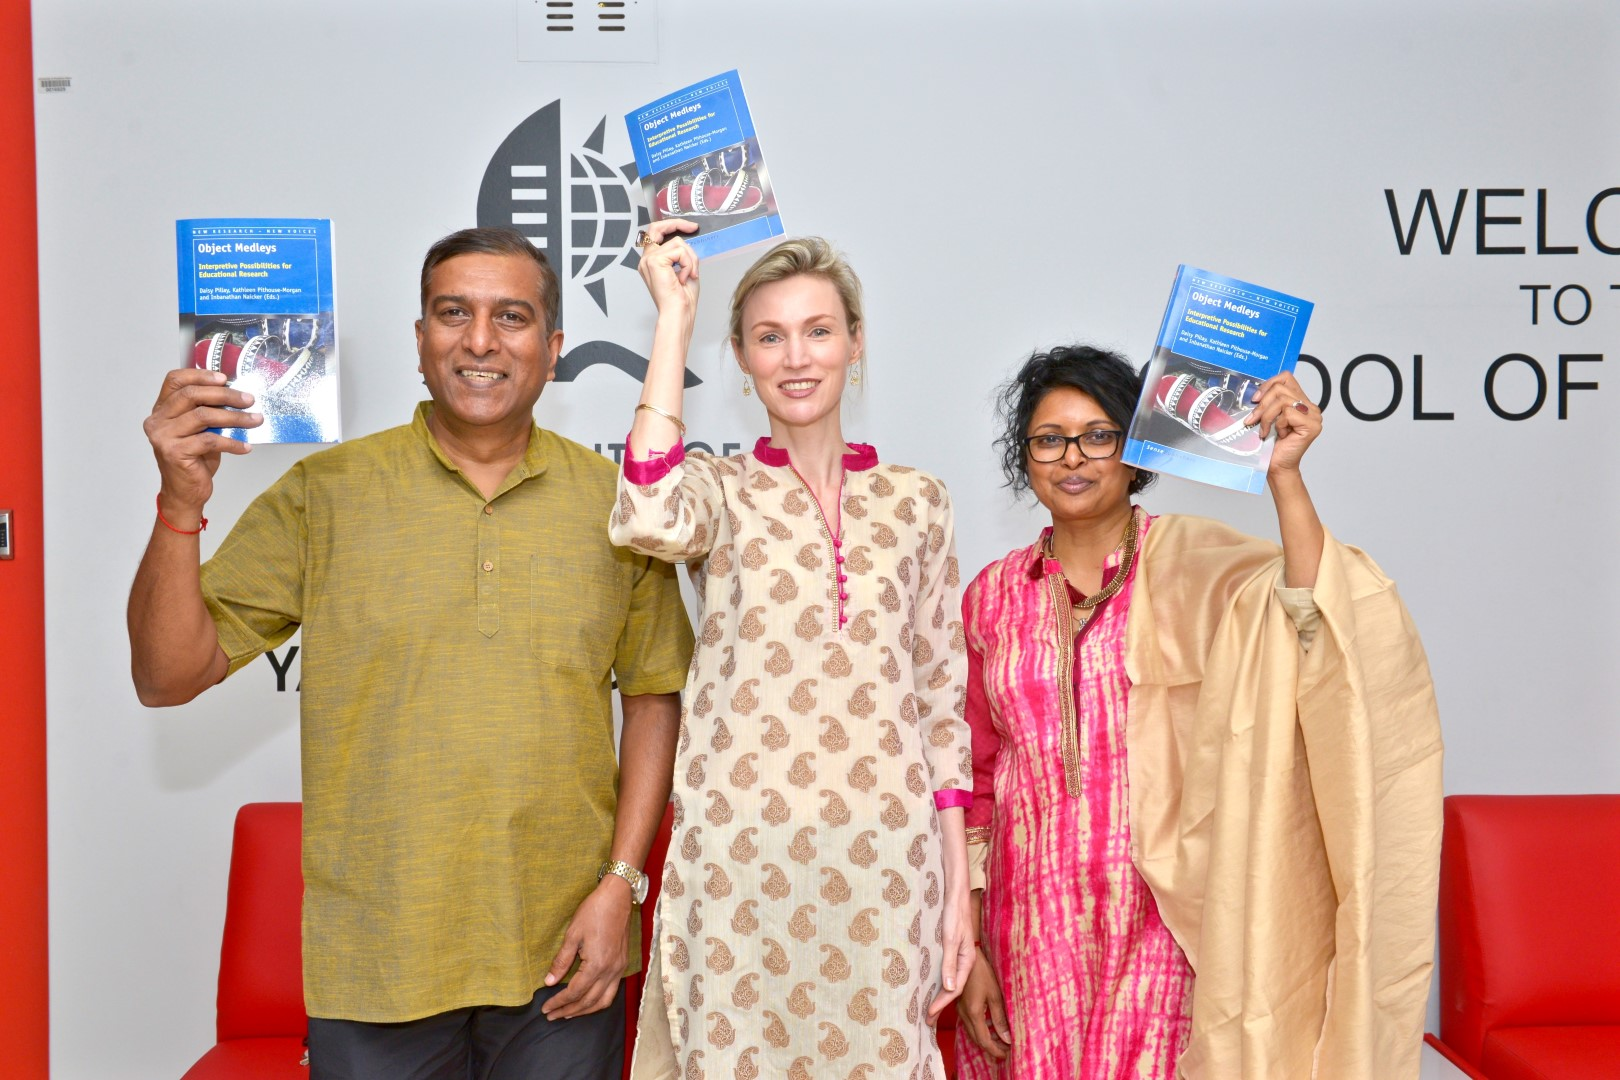 With their new book, from left is Dr Inbanathan Naicker, Professors Kathleen Pithouse-Morgan and Daisy Pillay.